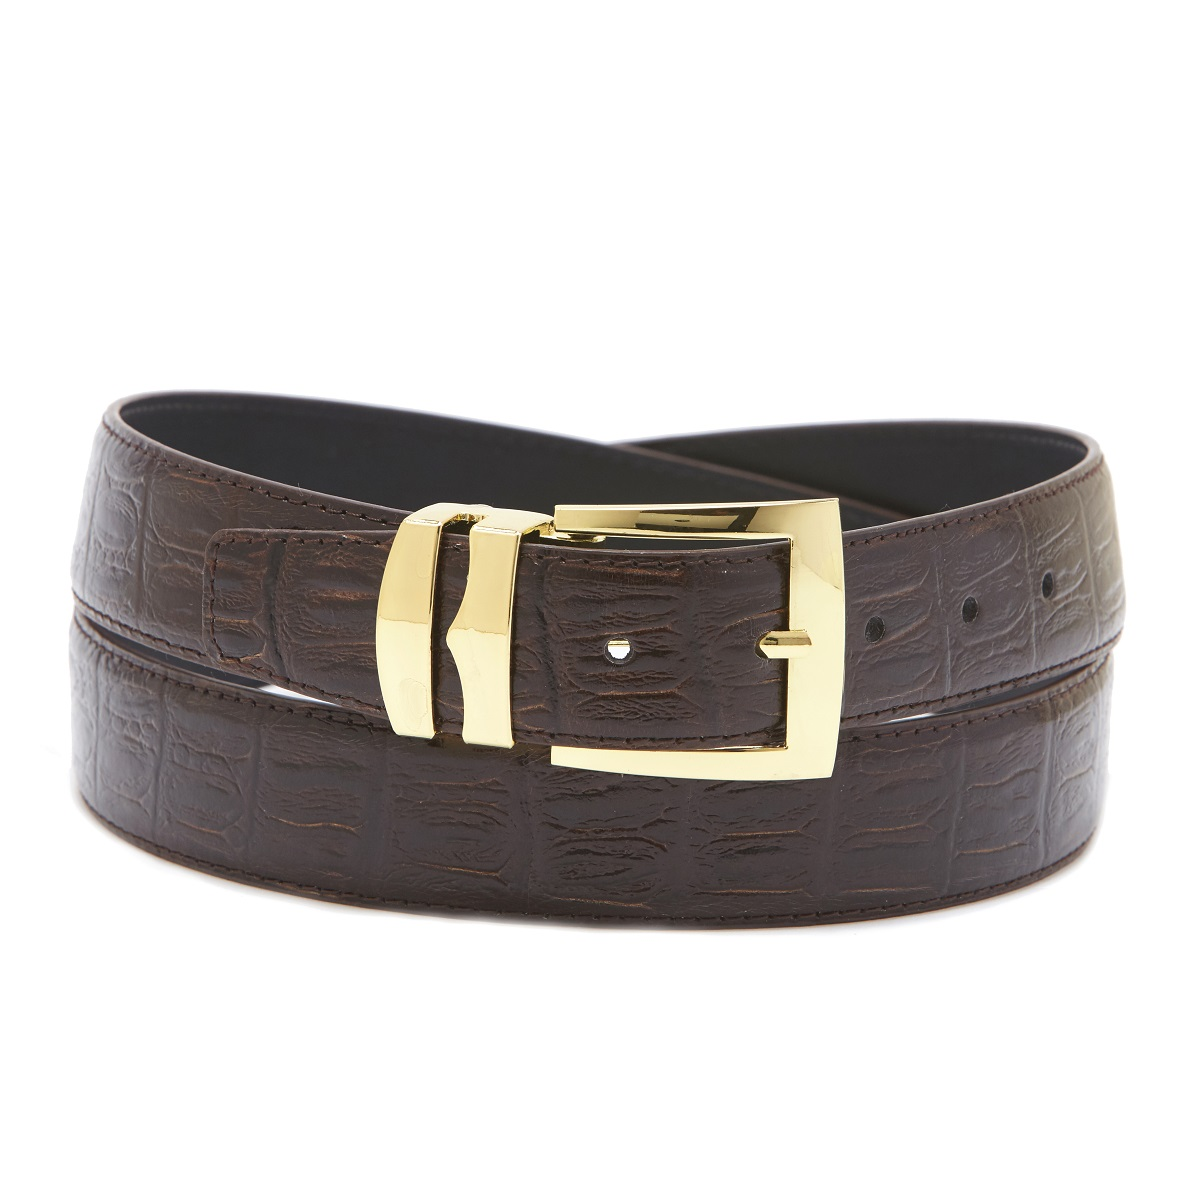 Relic belts at Kohl's - This women's Relic reversible bonded-leather belt features floral and paisley embossing and a silver-tone buckle.